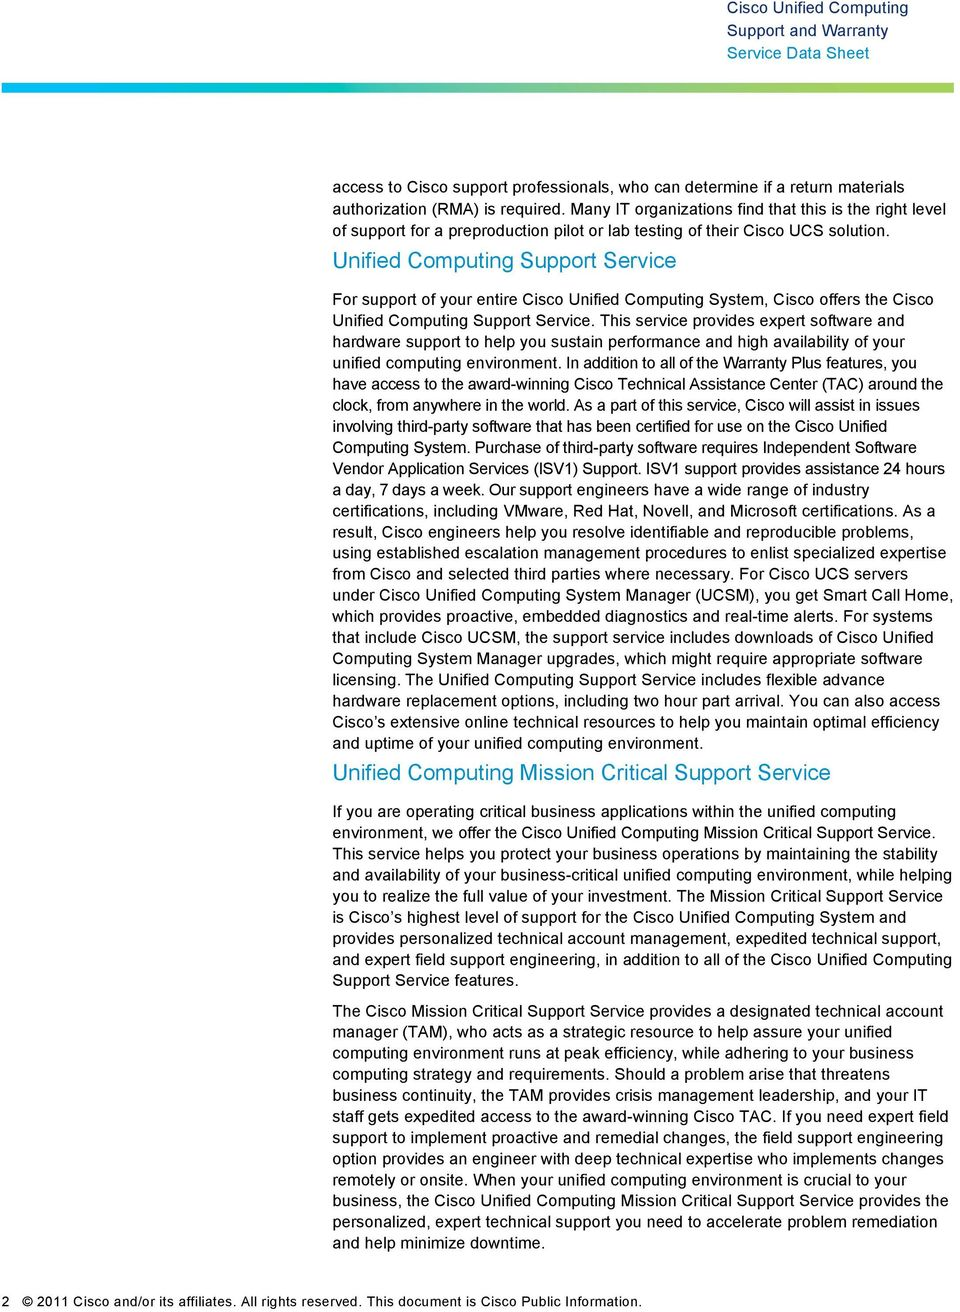 Unified Computing Support Service For support of your entire Cisco Unified Computing System, Cisco offers the Cisco Unified Computing Support Service.